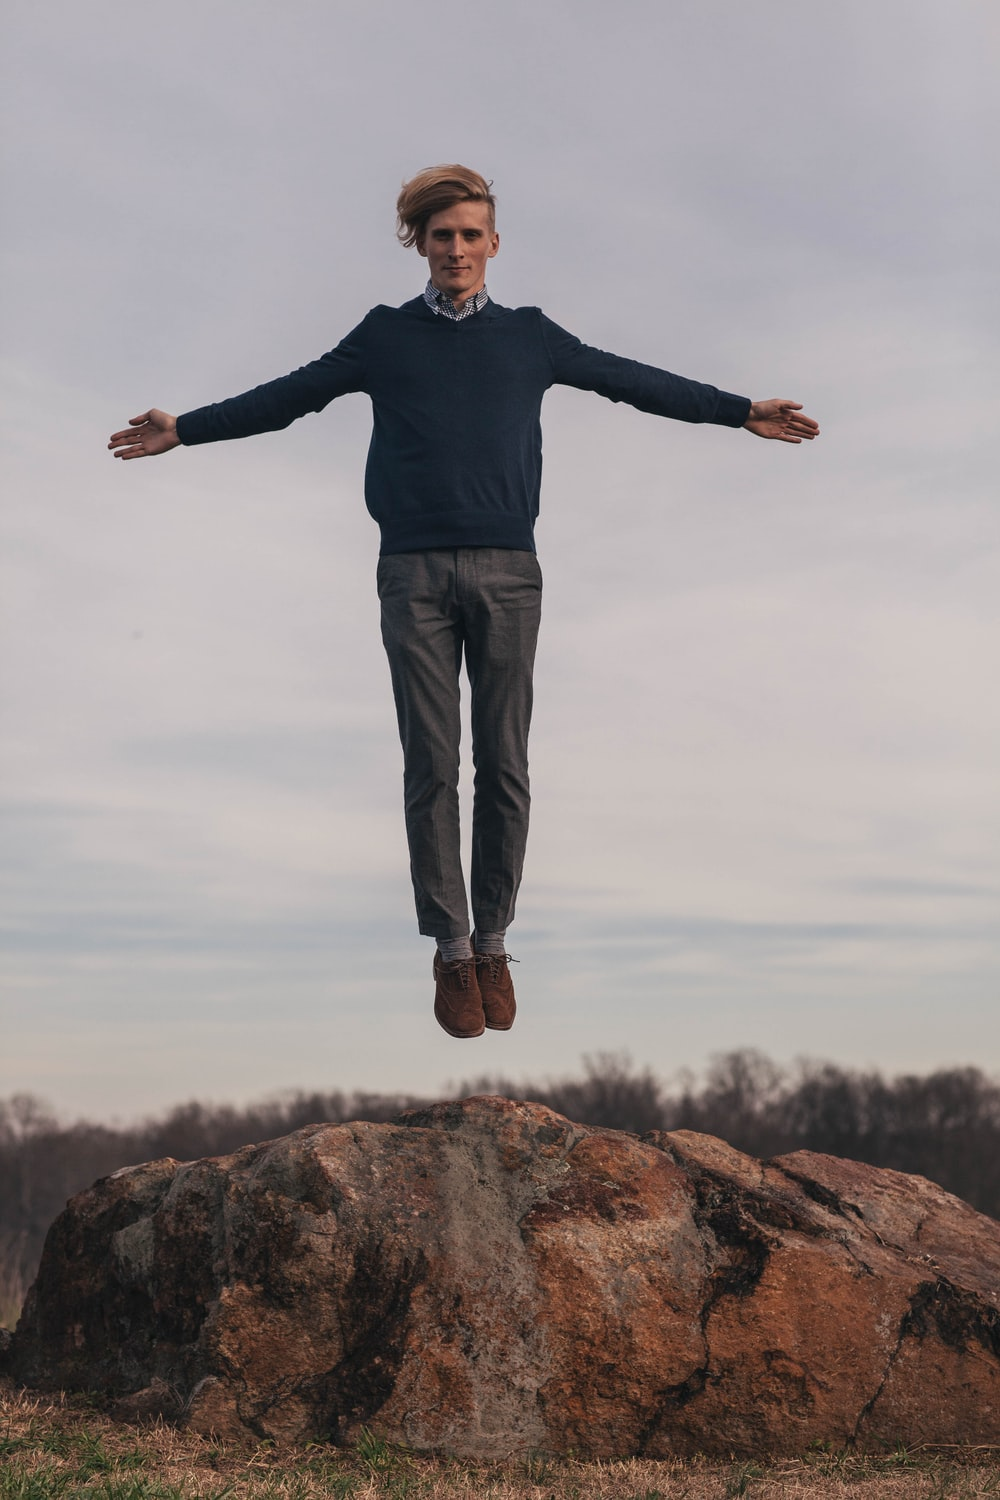 man jumping while open arms